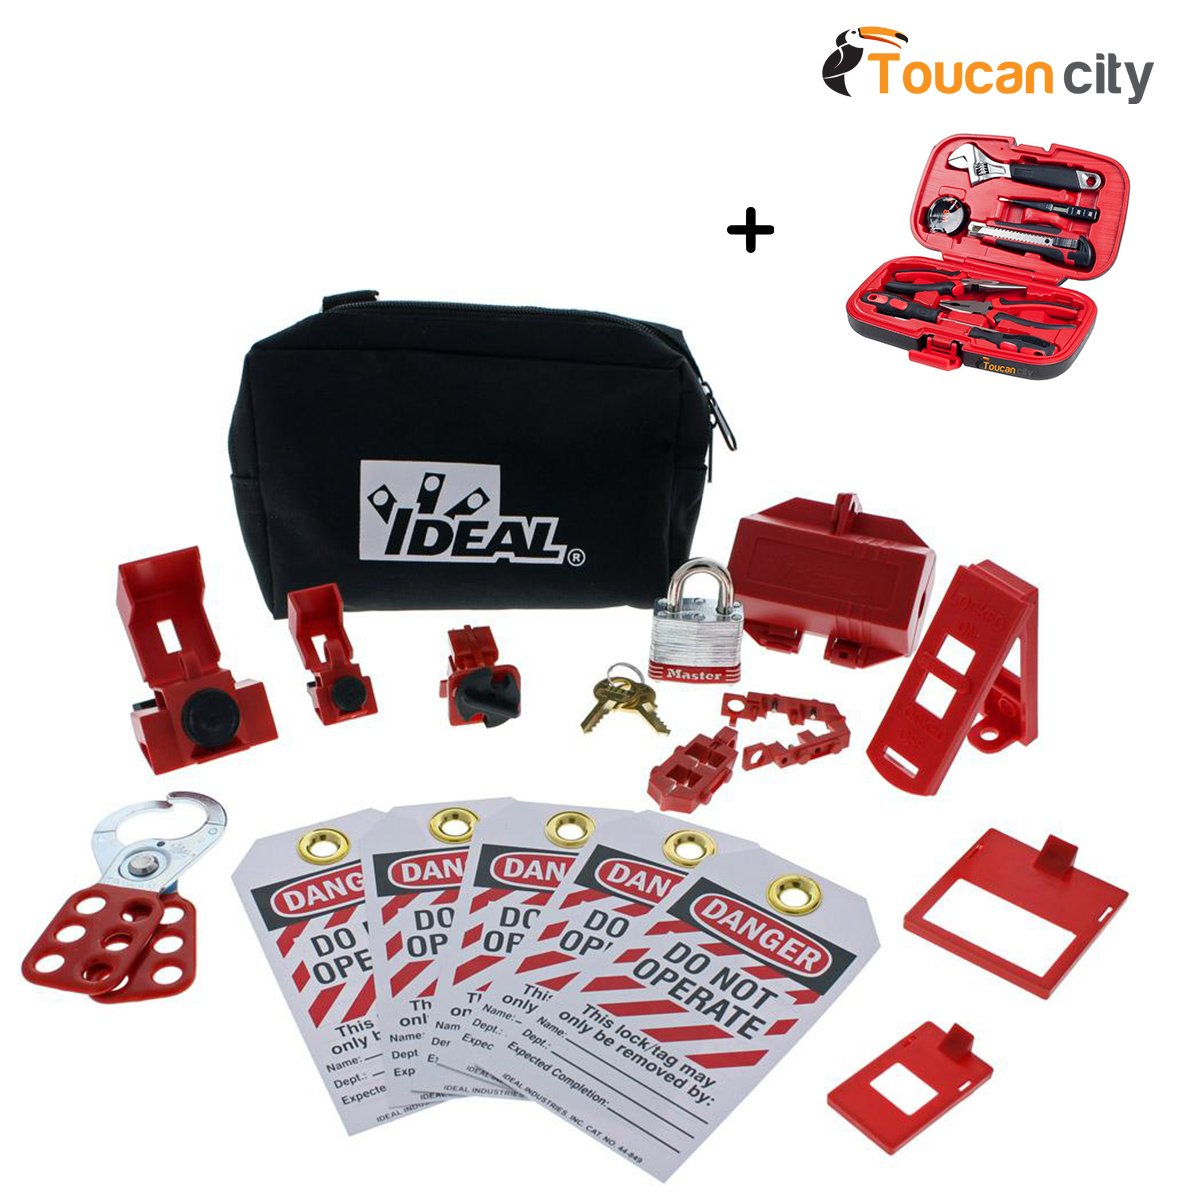 Toucan City Tool kit (9-piece) and Ideal Basic Lockout/Tagout Kit (15-Piece) 44-970 by Toucan City (Image #1)